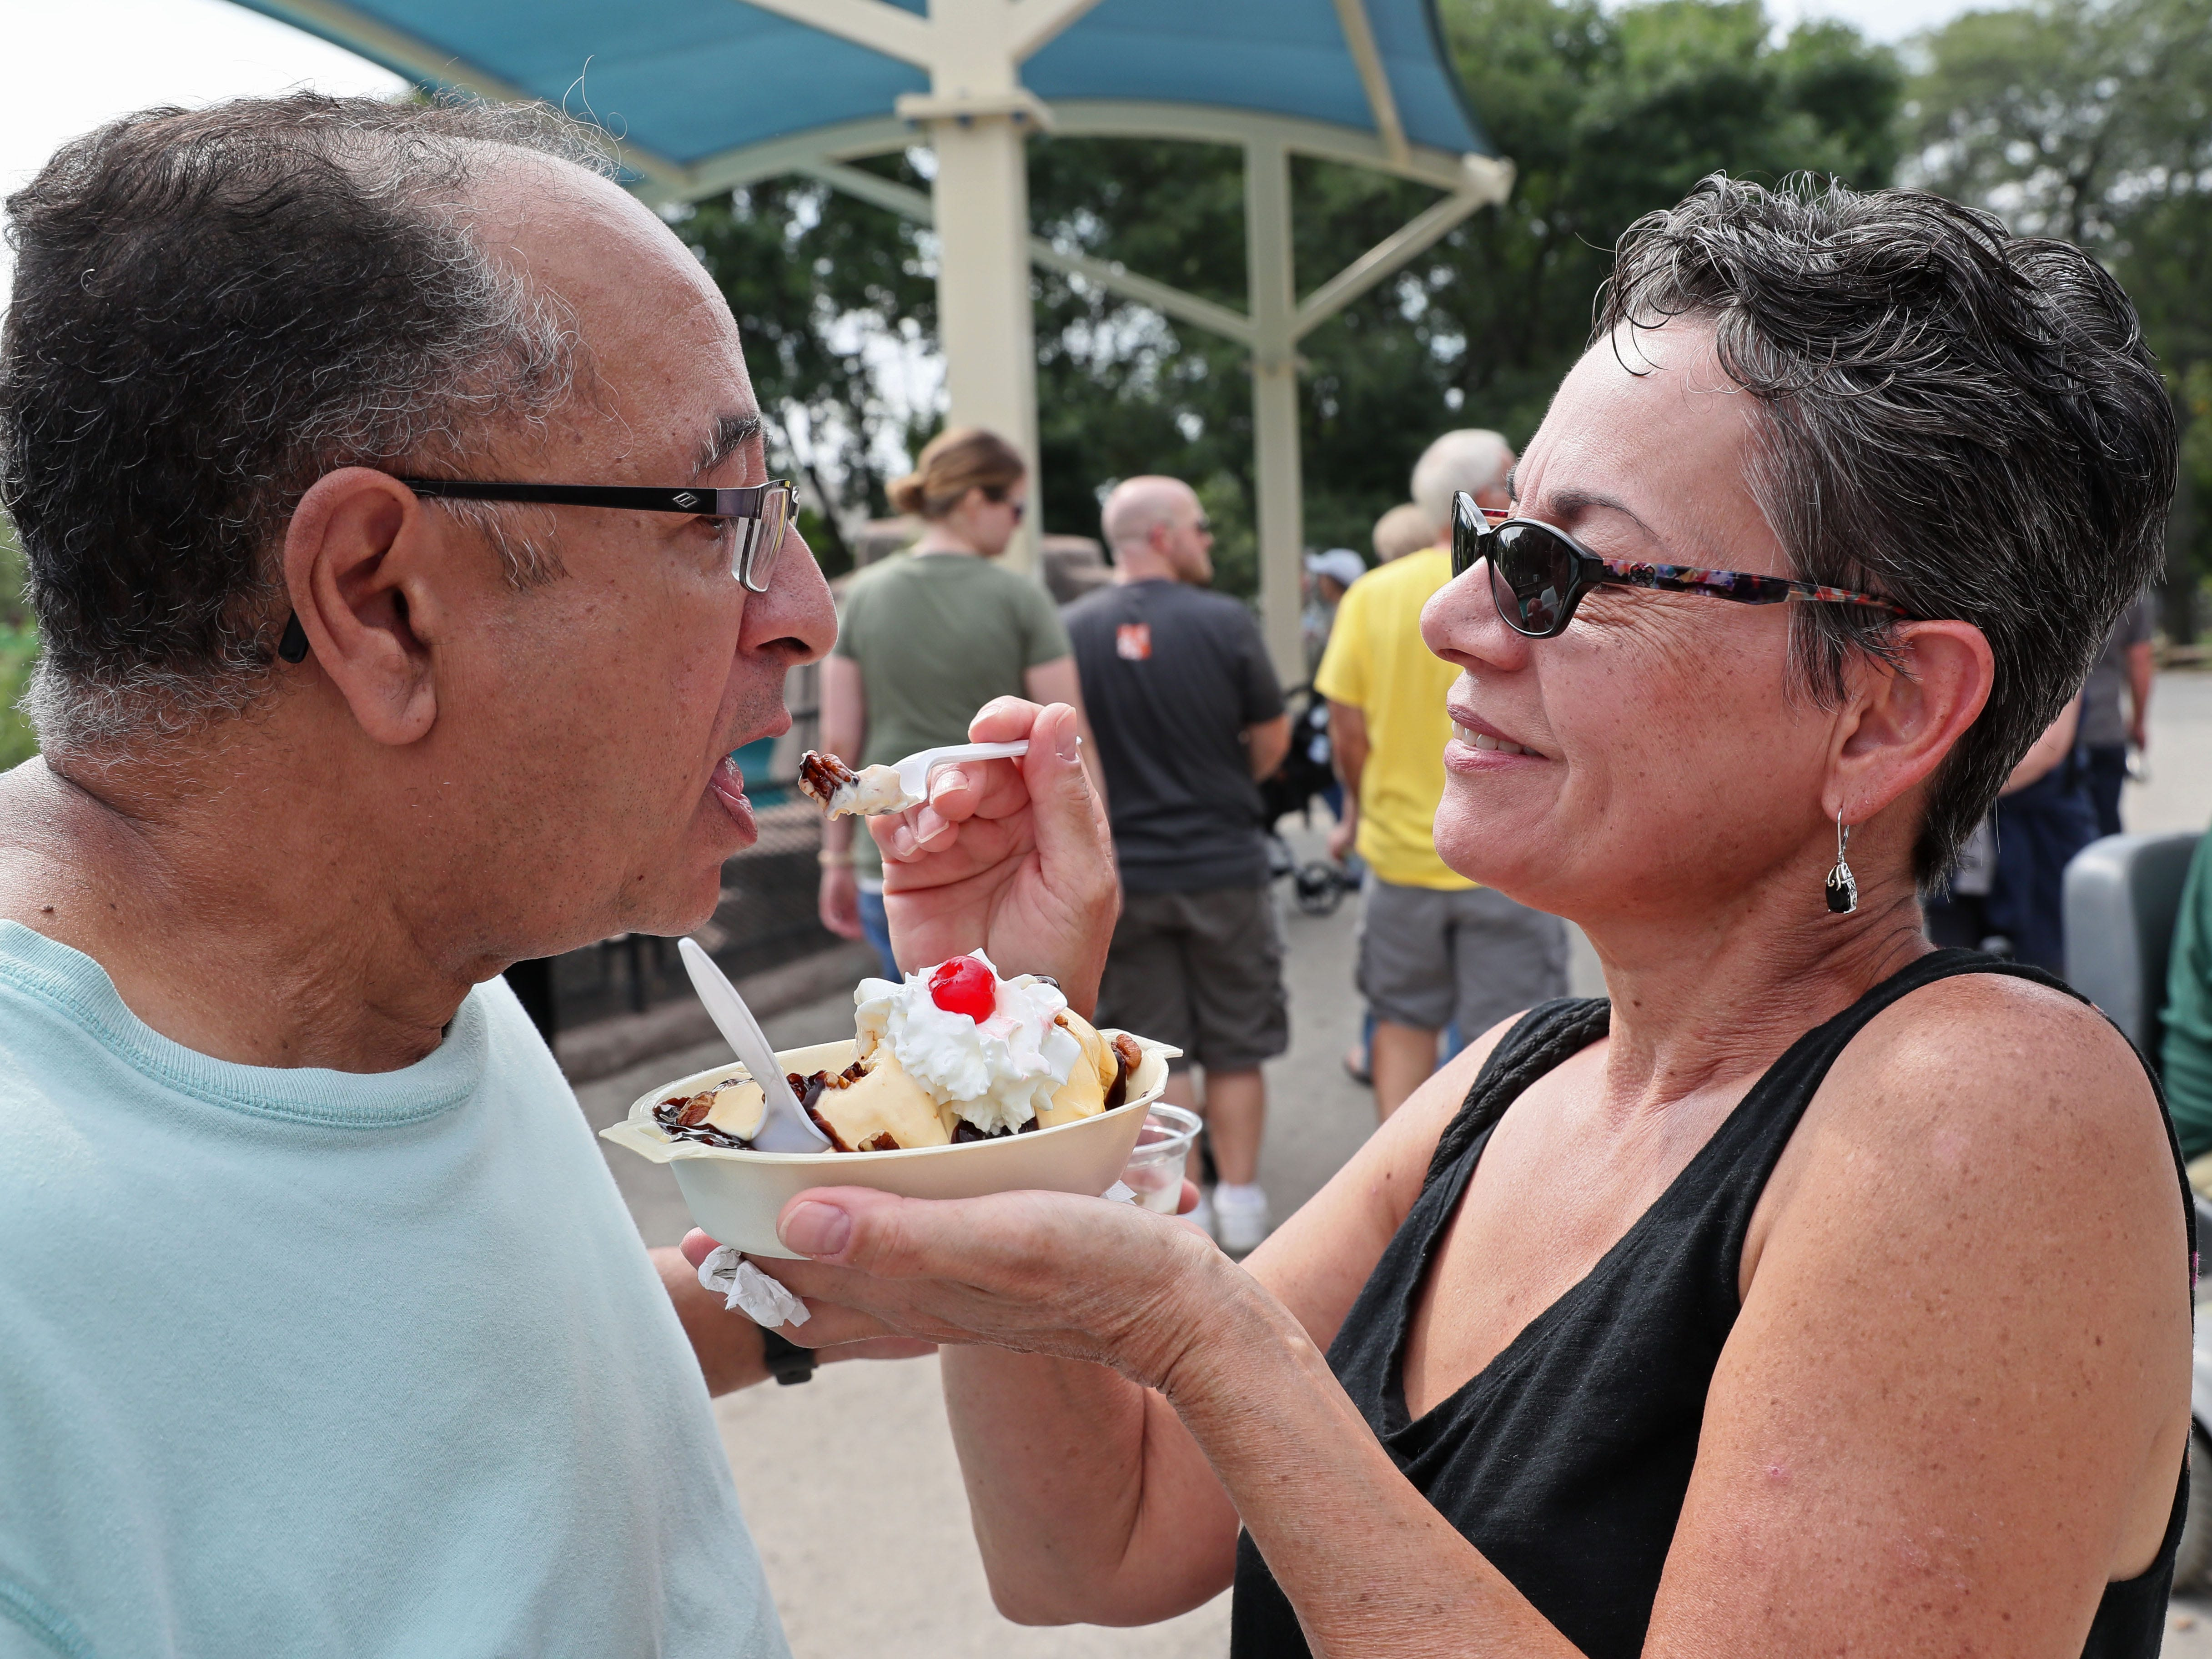 Toni Crespo gives her husband, Gil, a taste of her Turtle Sundae from Ultimate Confections. The couple are from Franklin.